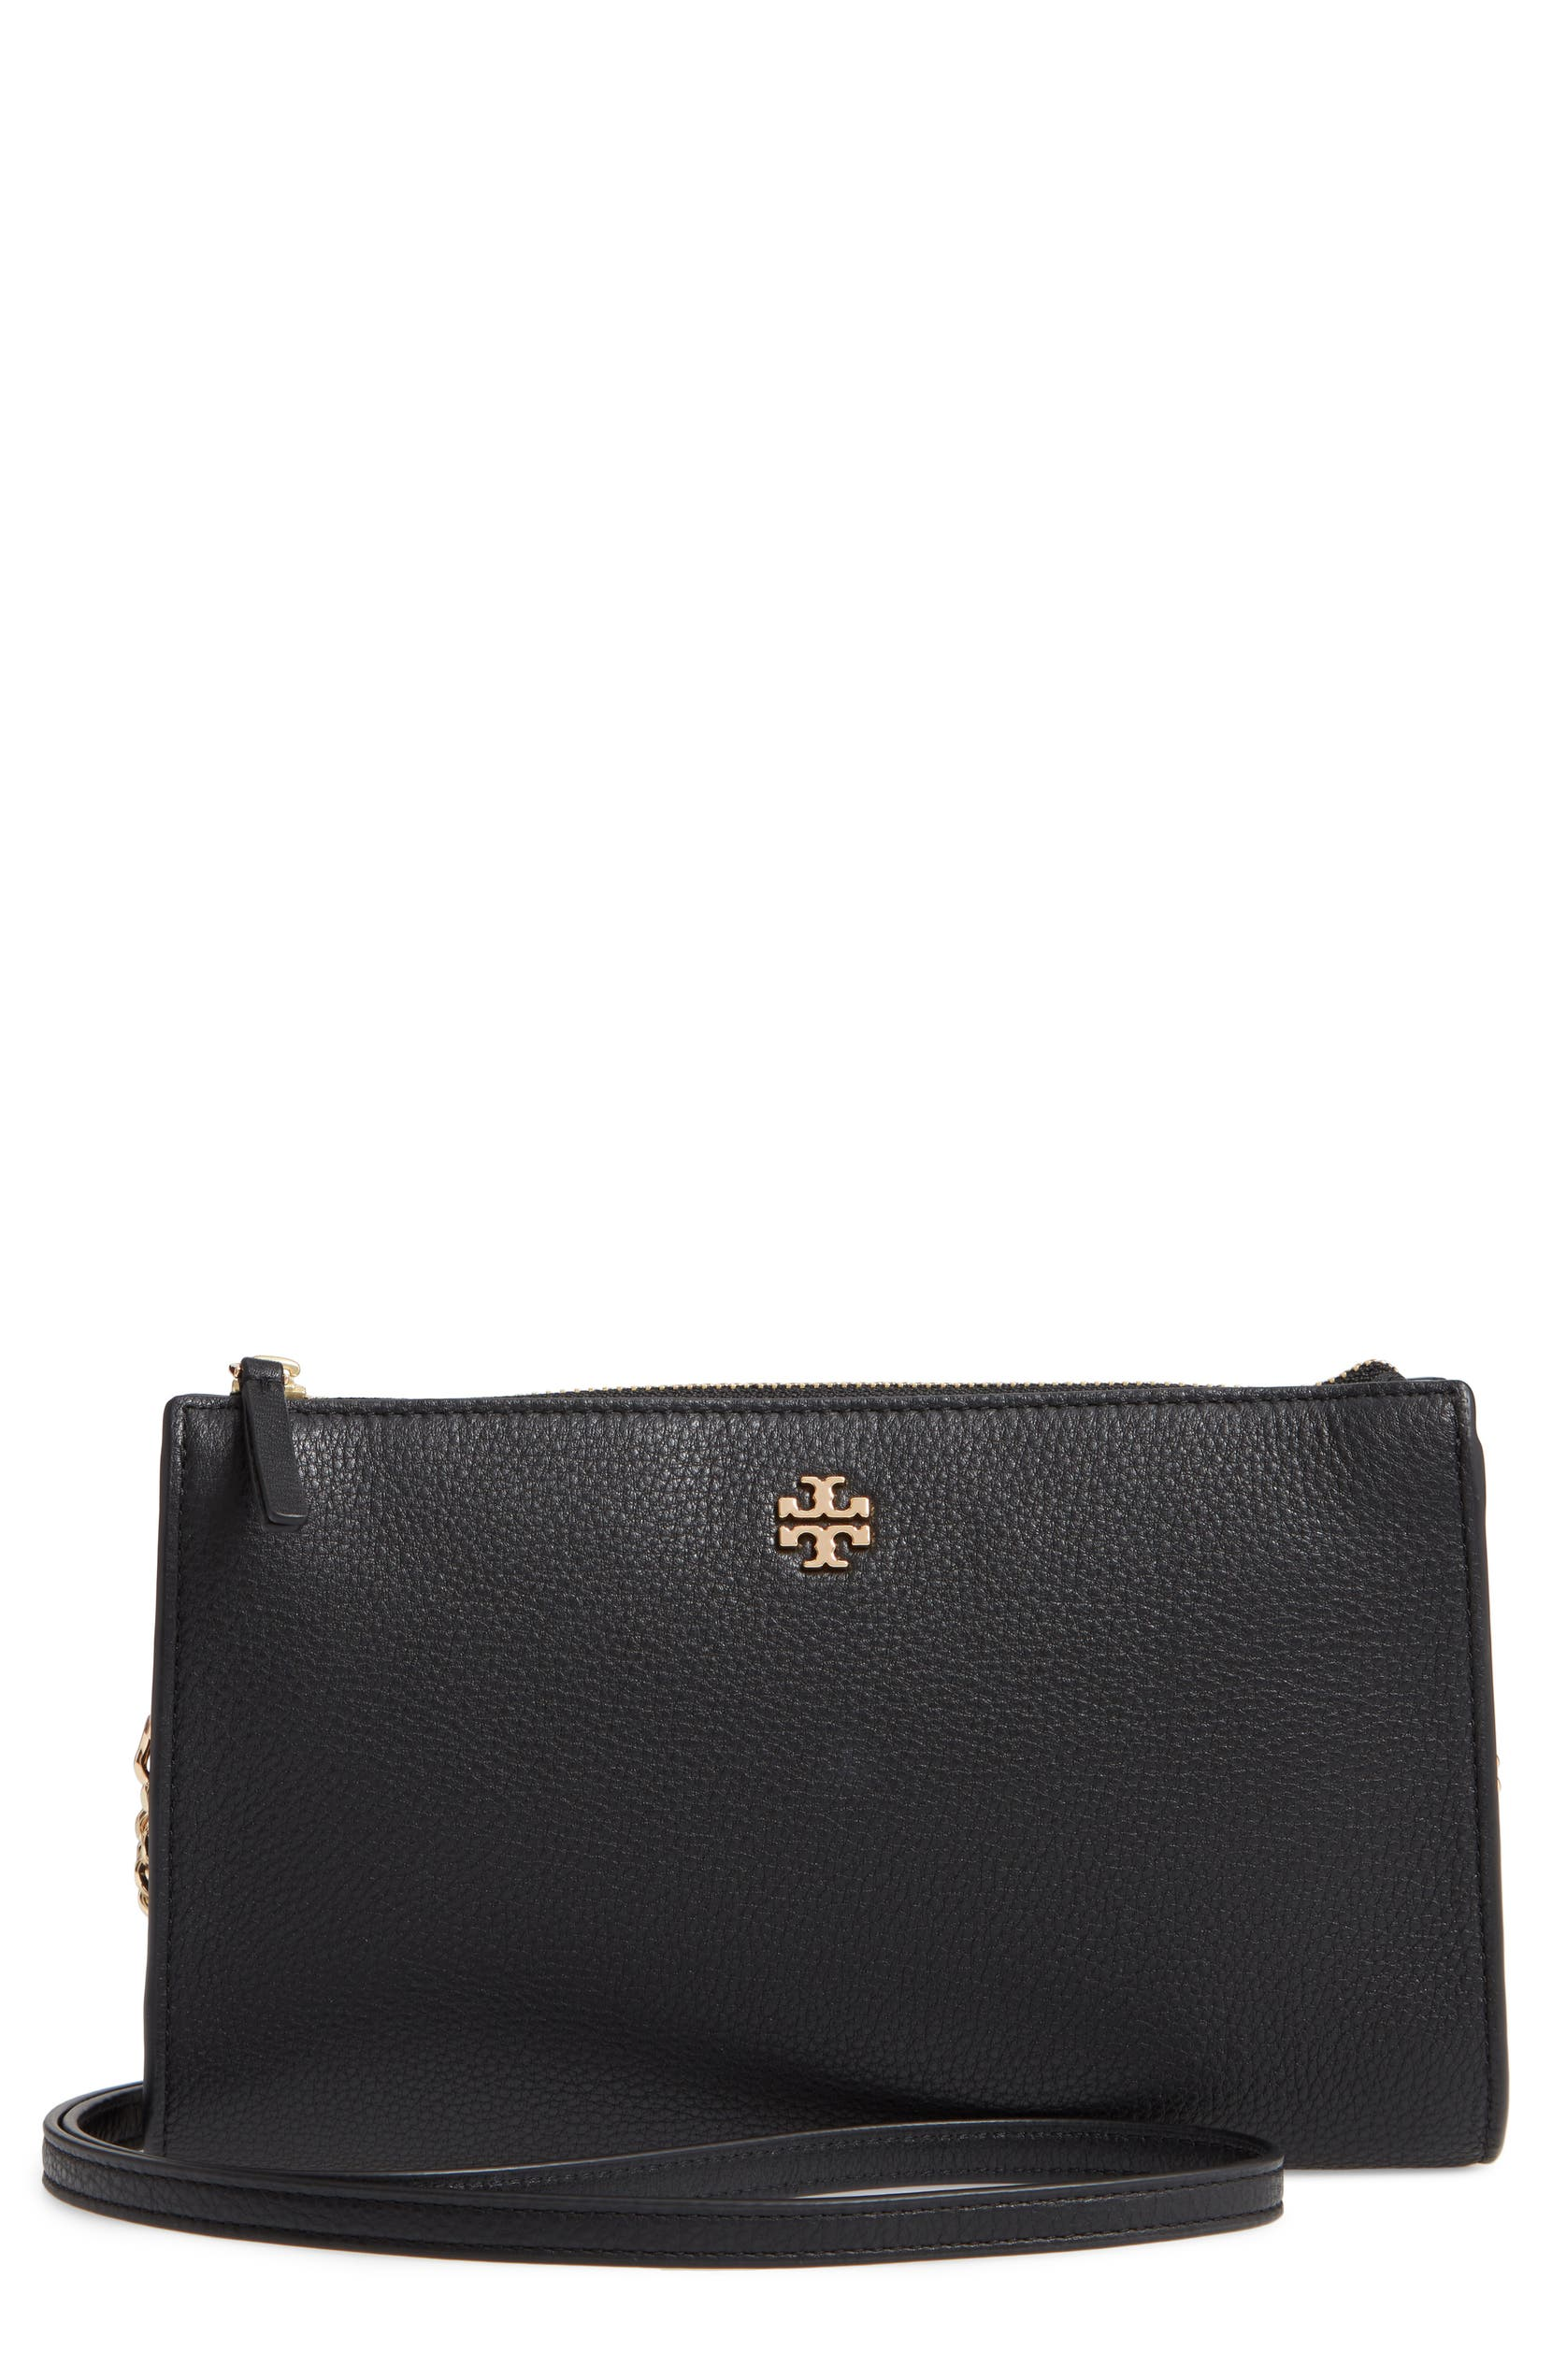 d61cf84957 Tory Burch Pebbled Leather Top Zip Crossbody Bag | Nordstrom